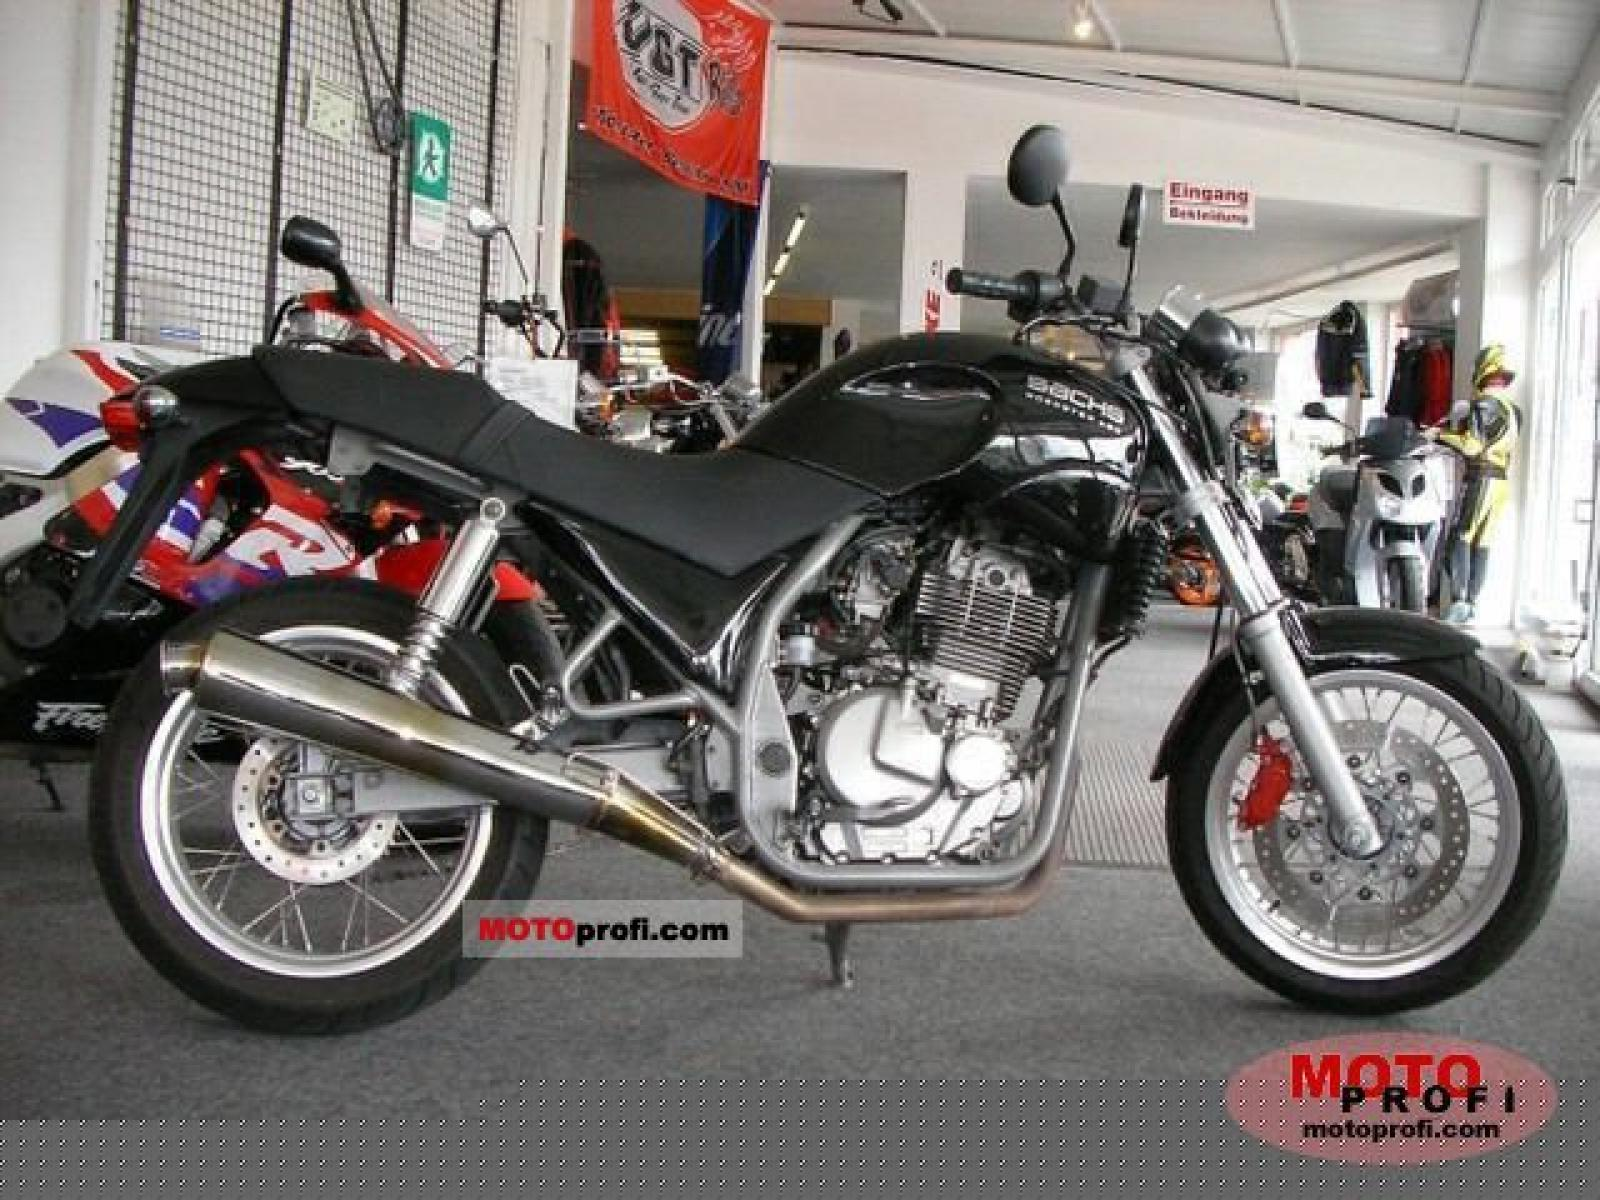 Sachs Roadster 650 2003 images #124100